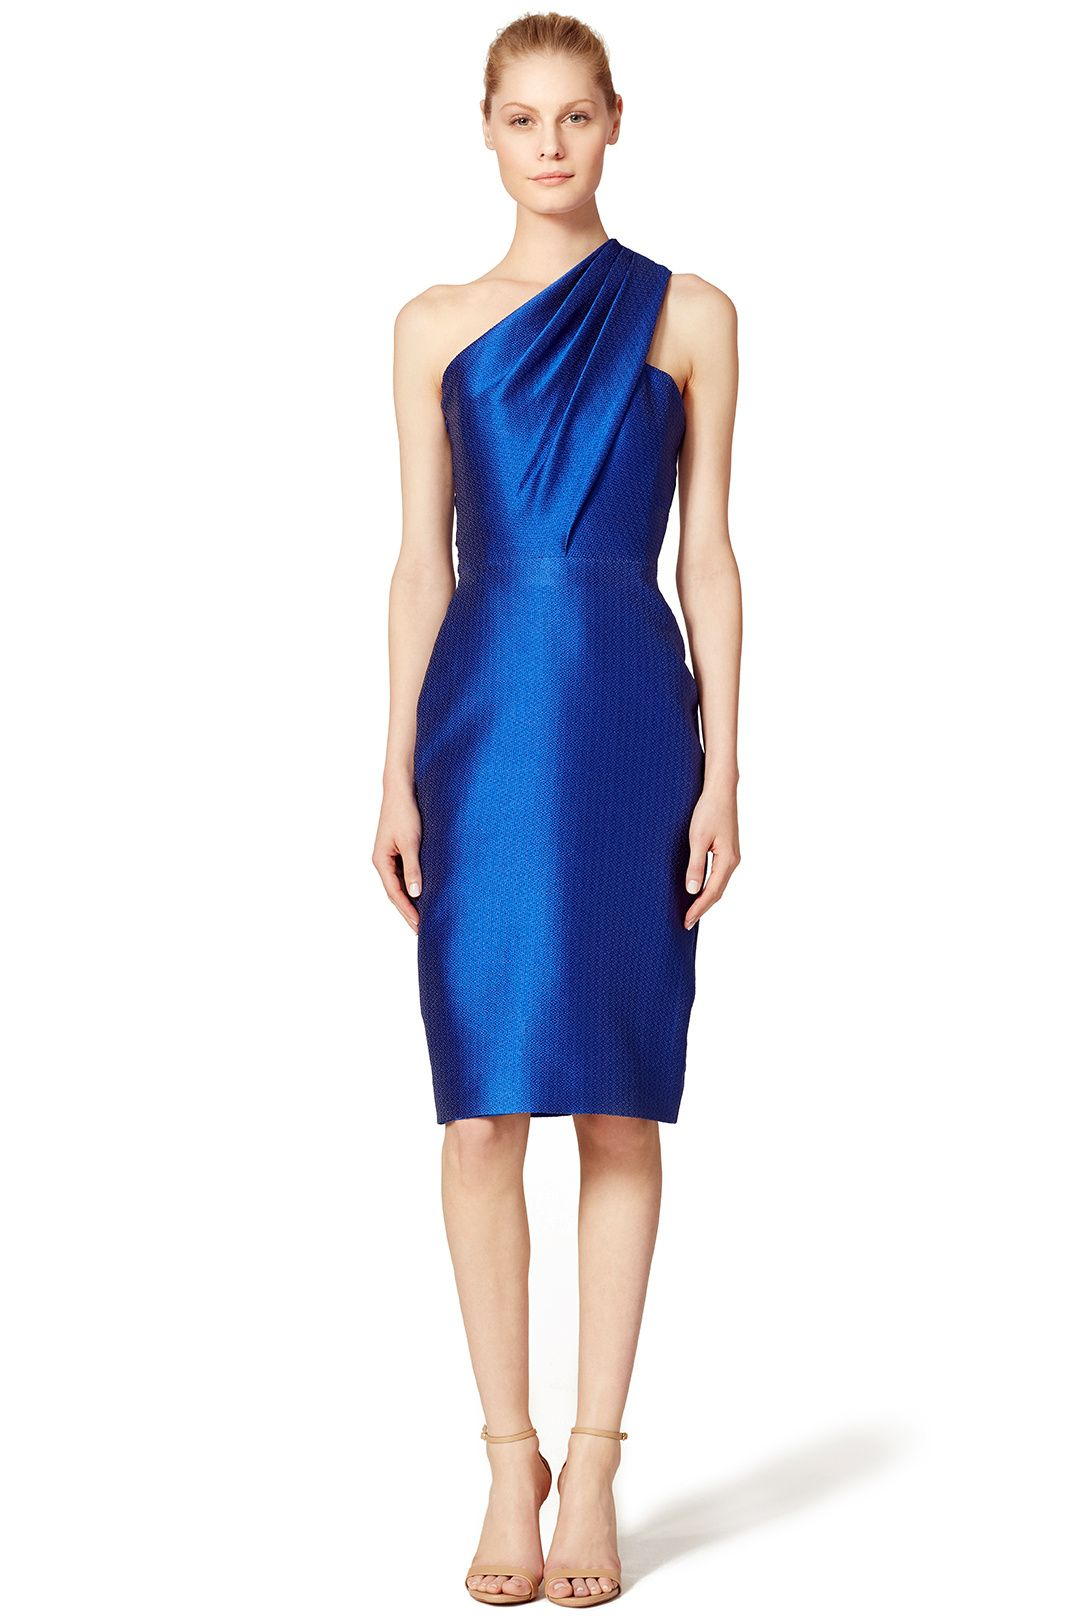 Sleek cobalt sheath by ml monique lhuillier for 75 rent the sleek cobalt sheath by ml monique lhuillier for 75 rent the runway ombrellifo Images